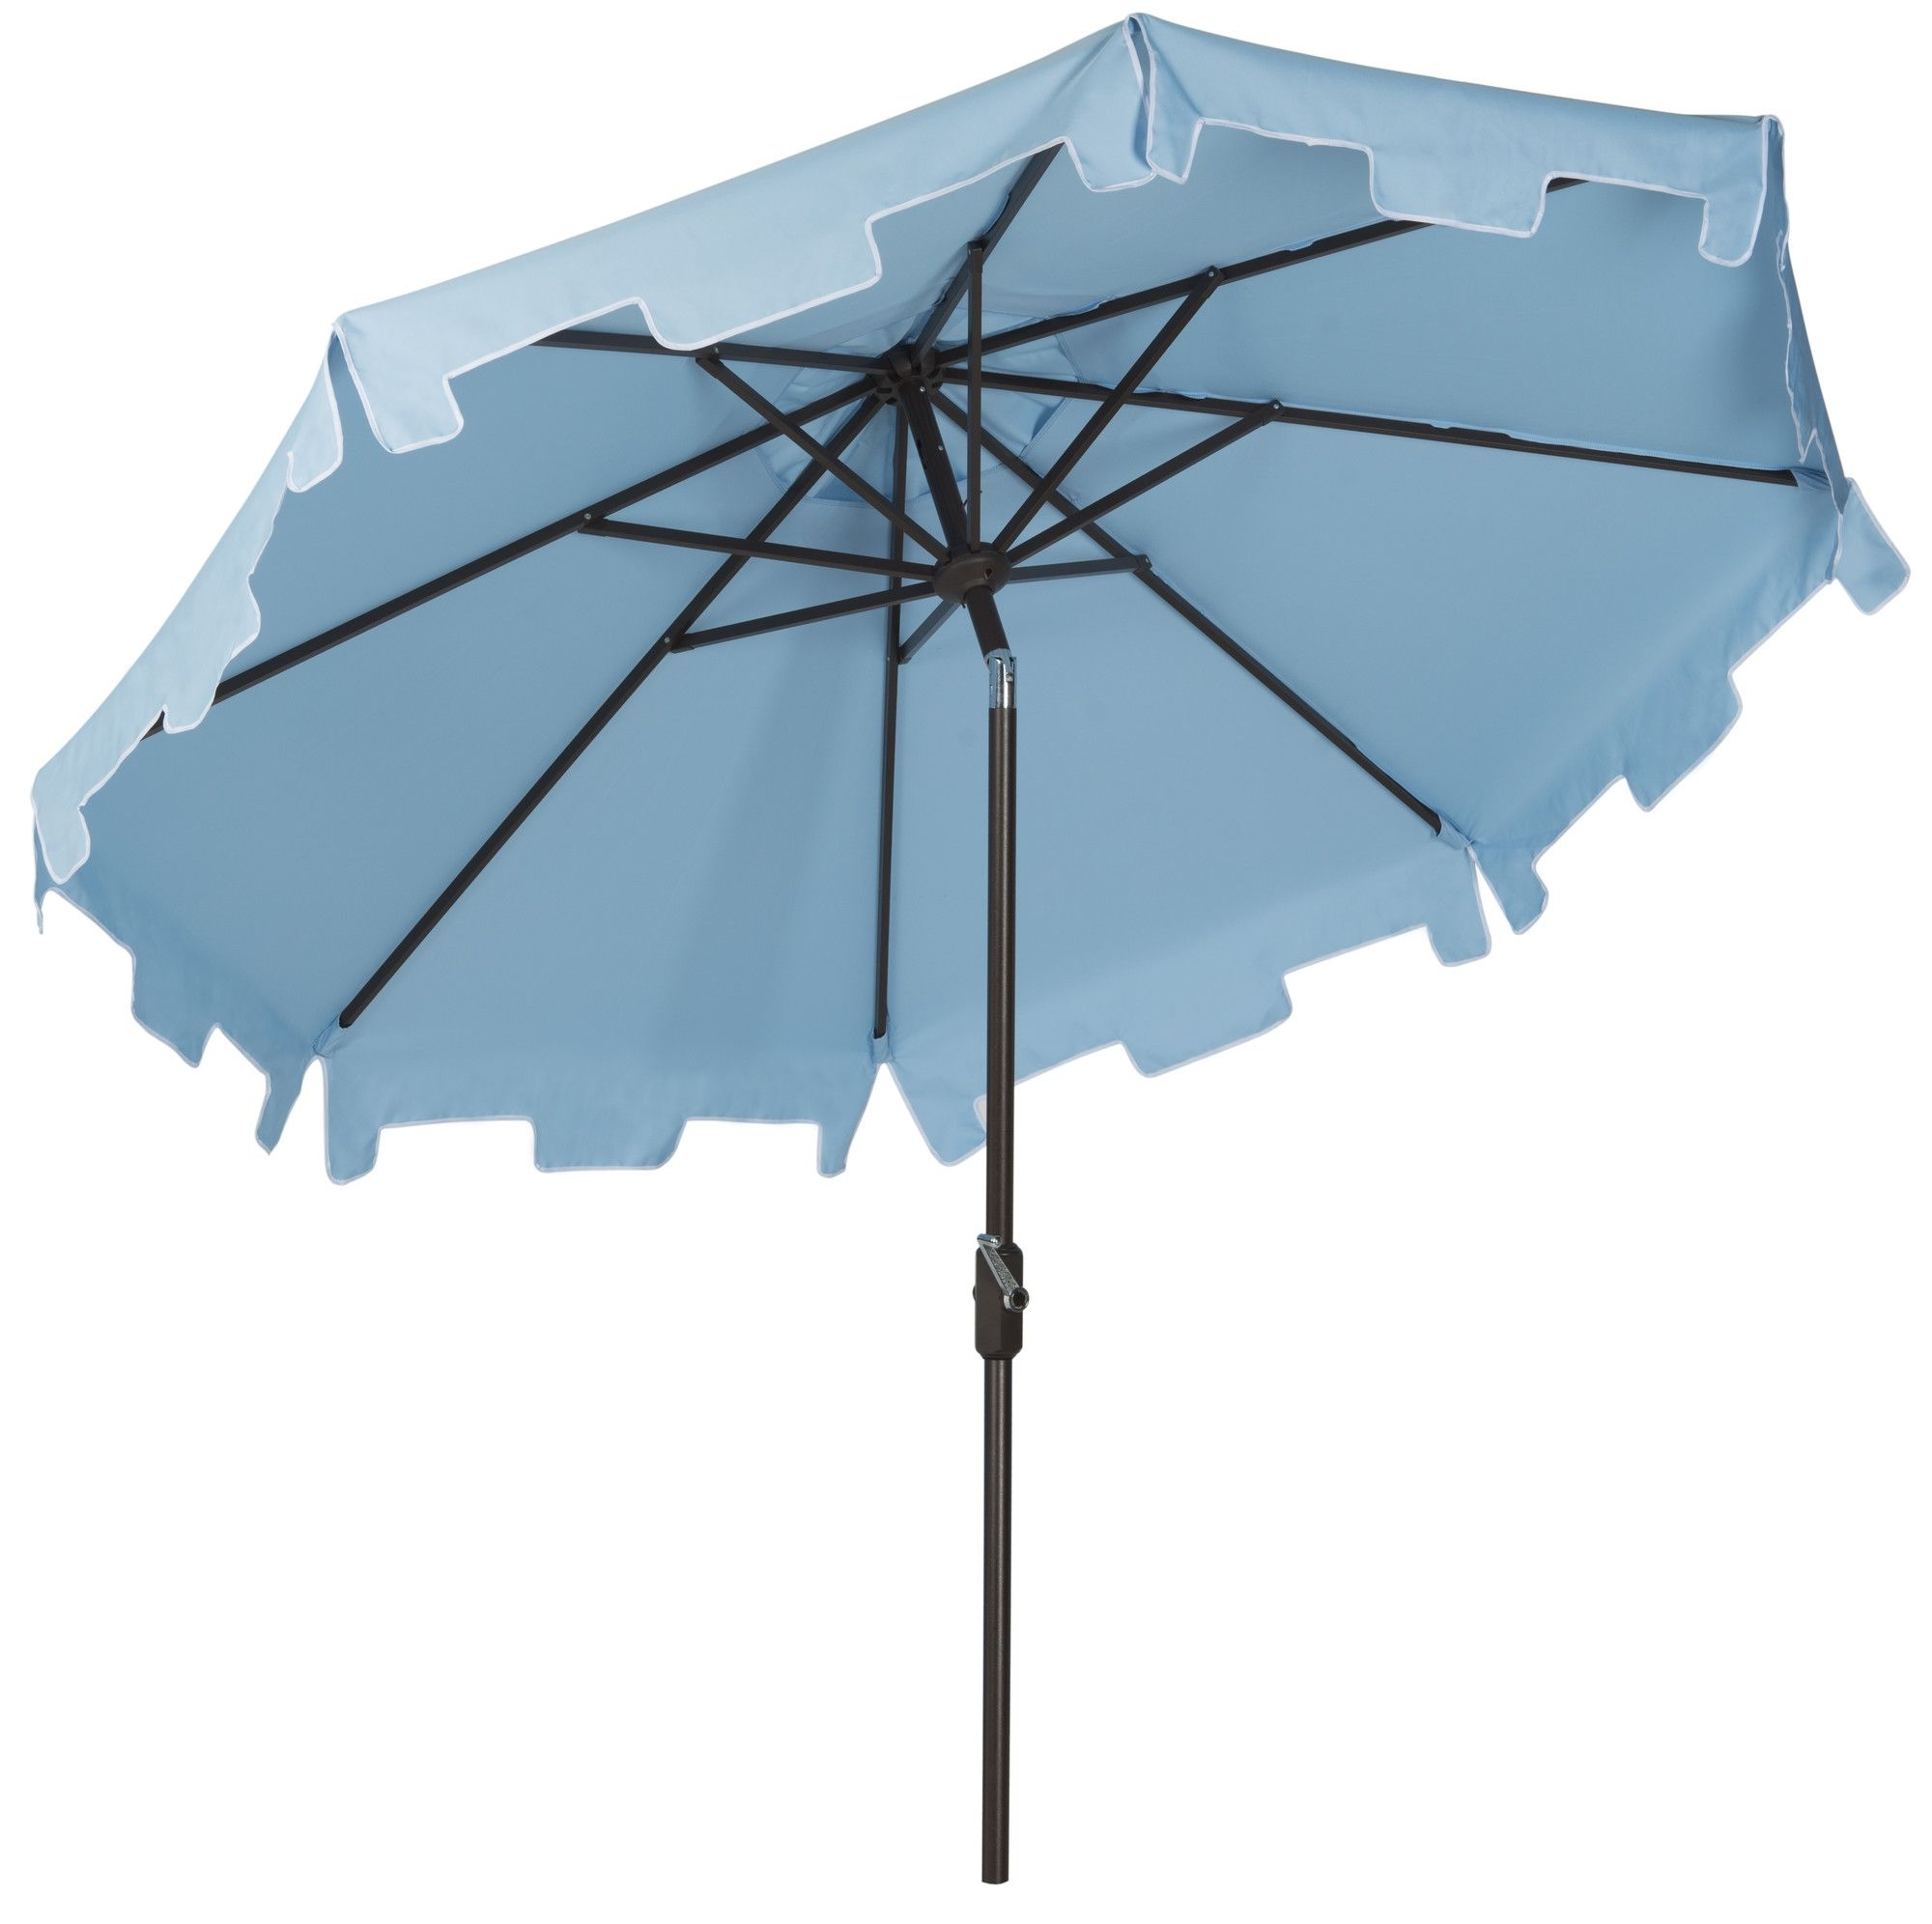 Wayfair Patio Umbrellas In 2019 Shop Wayfair For All Patio Umbrellas To Match Every Style And Budget (View 15 of 20)